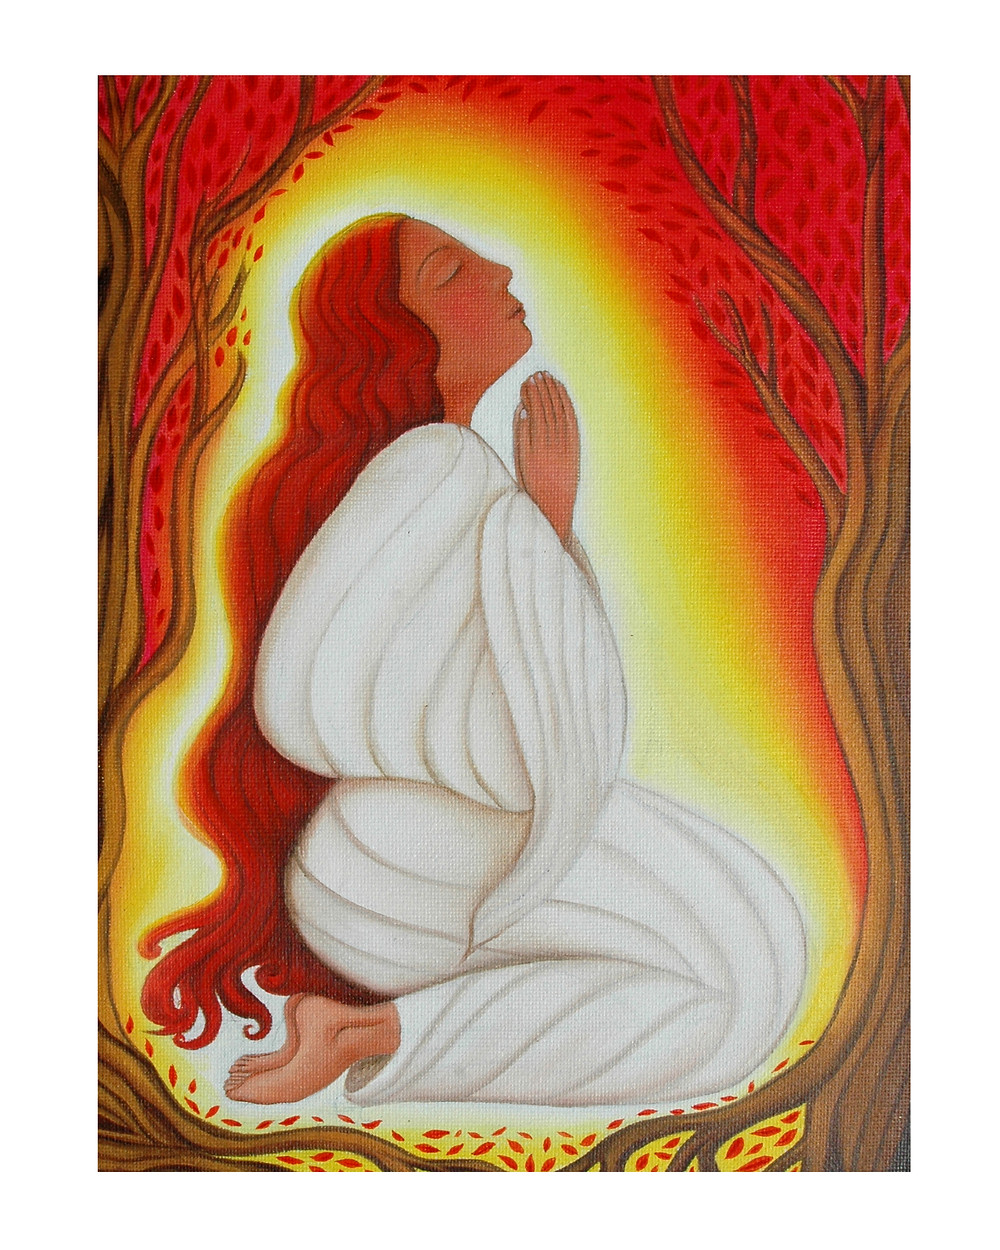 Mary Magdalene in Meditation by Tanya Torres, 2010